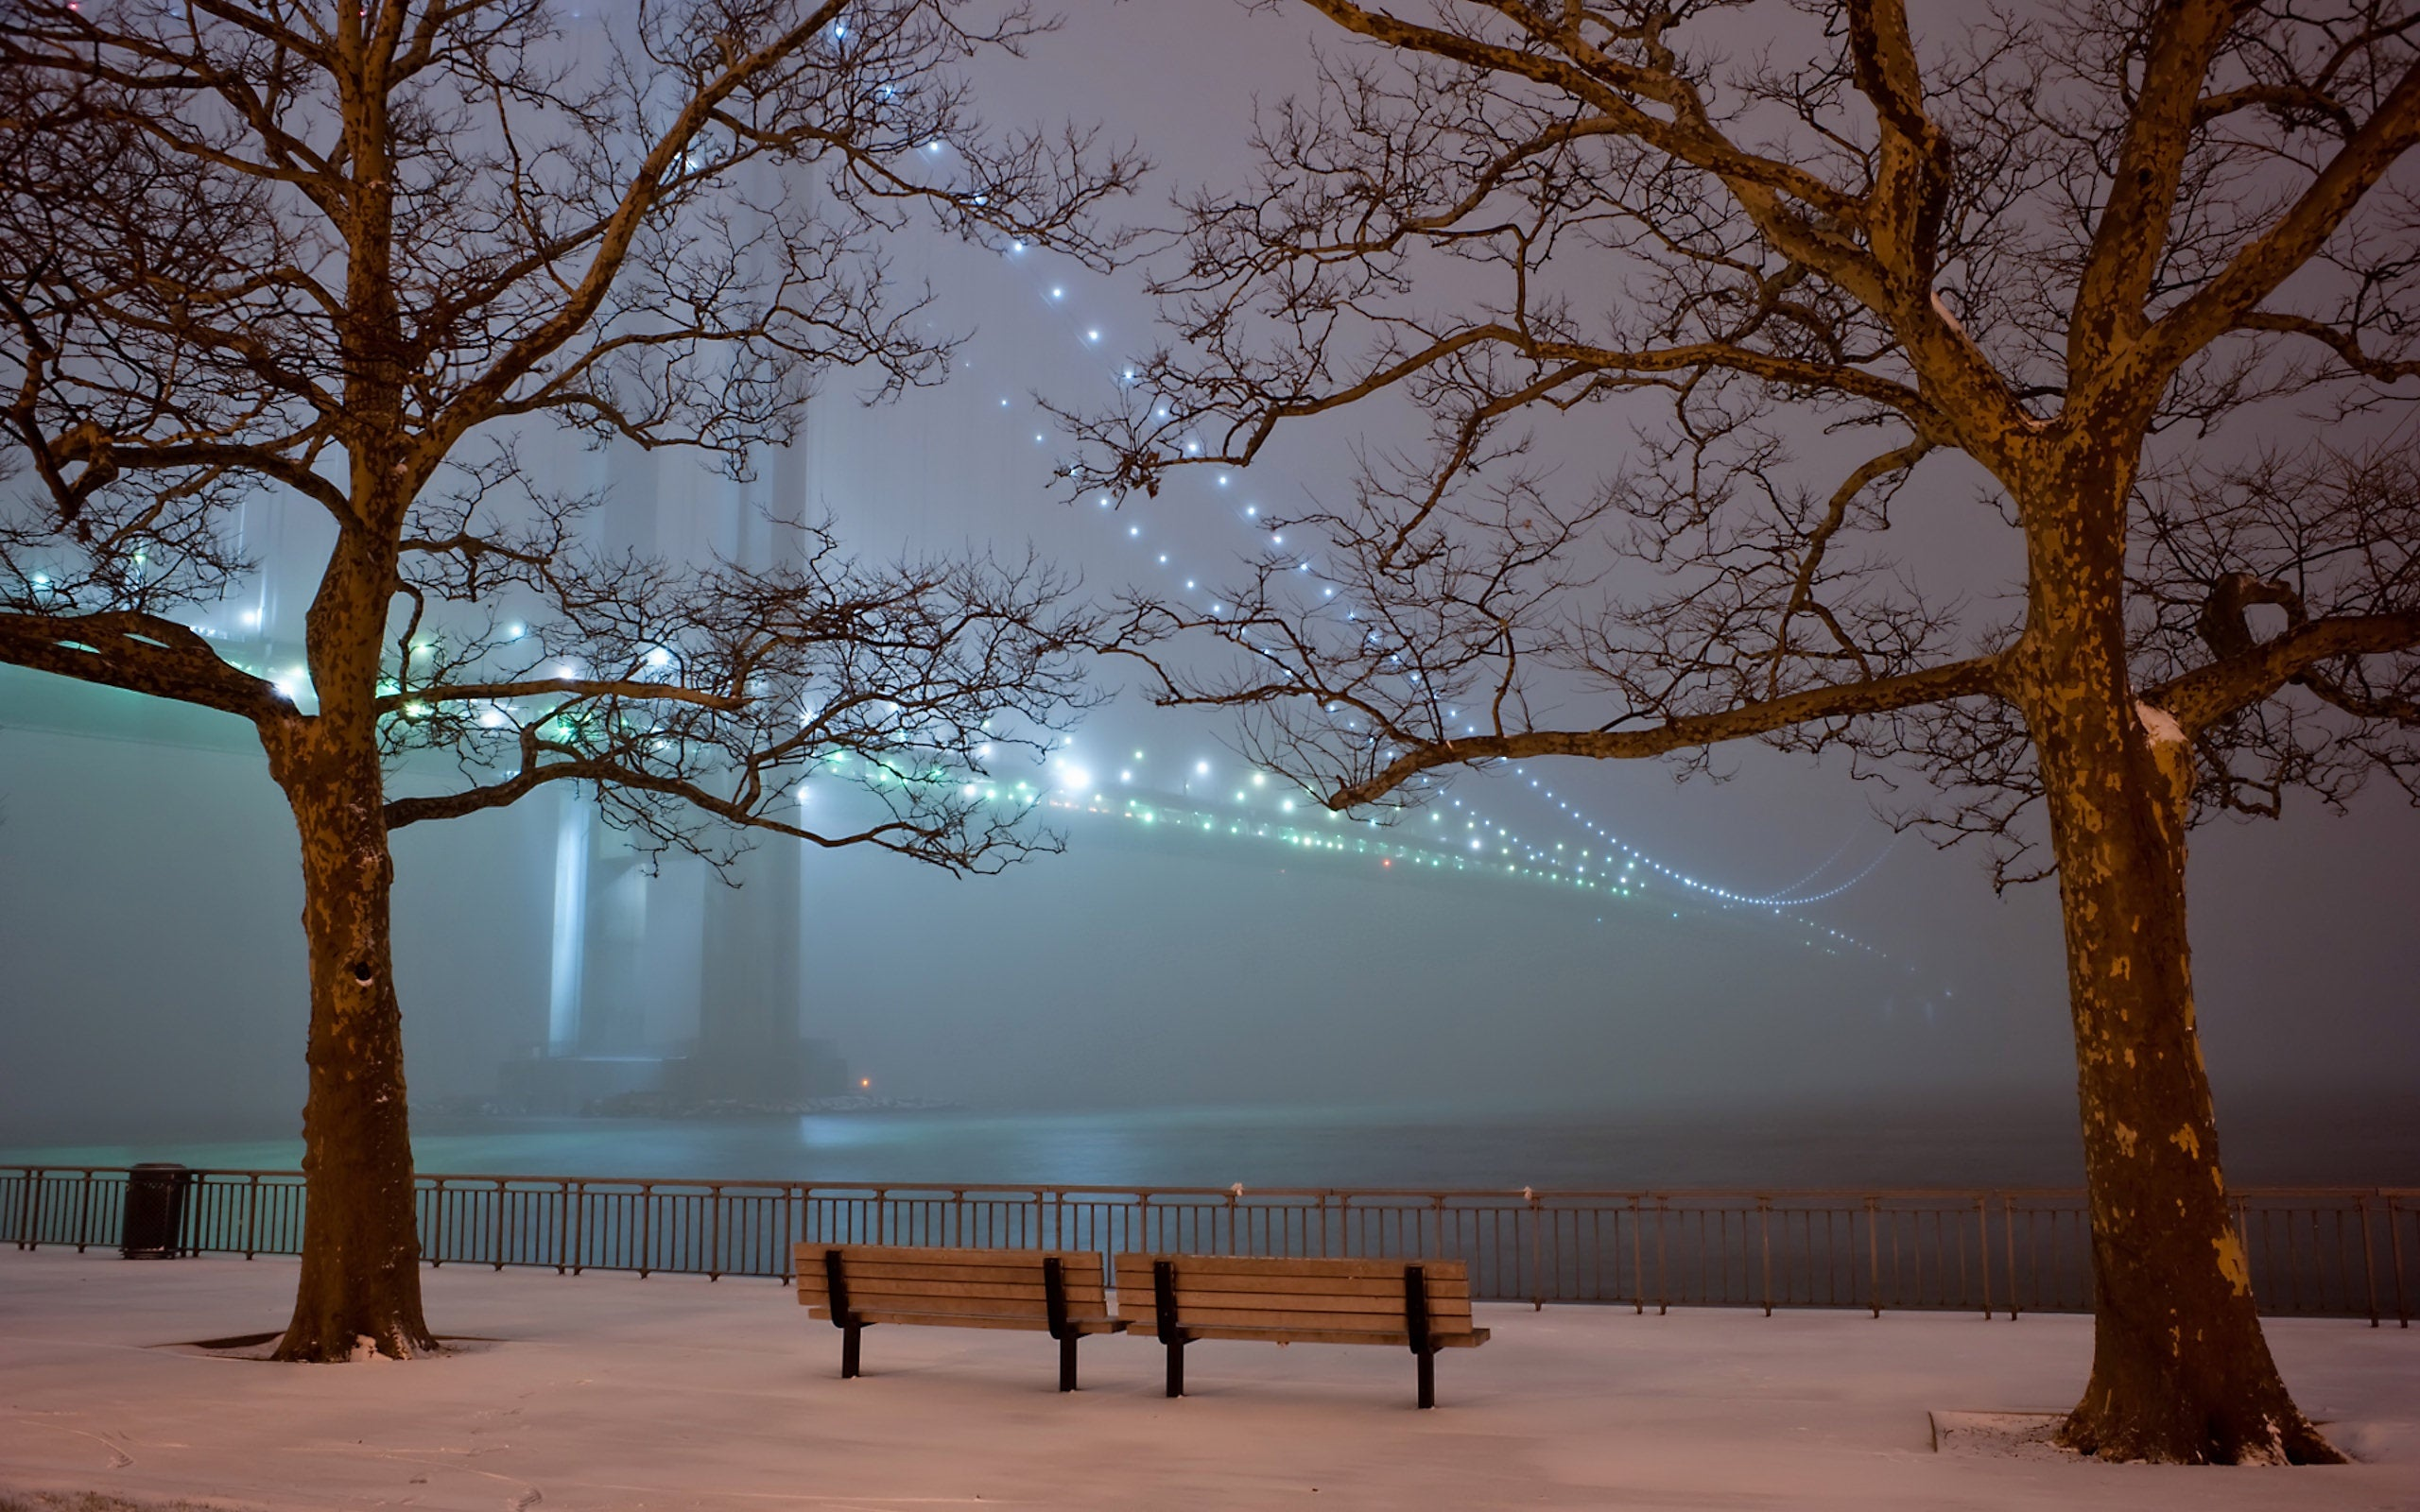 Download Snow In The Park Wallpaper